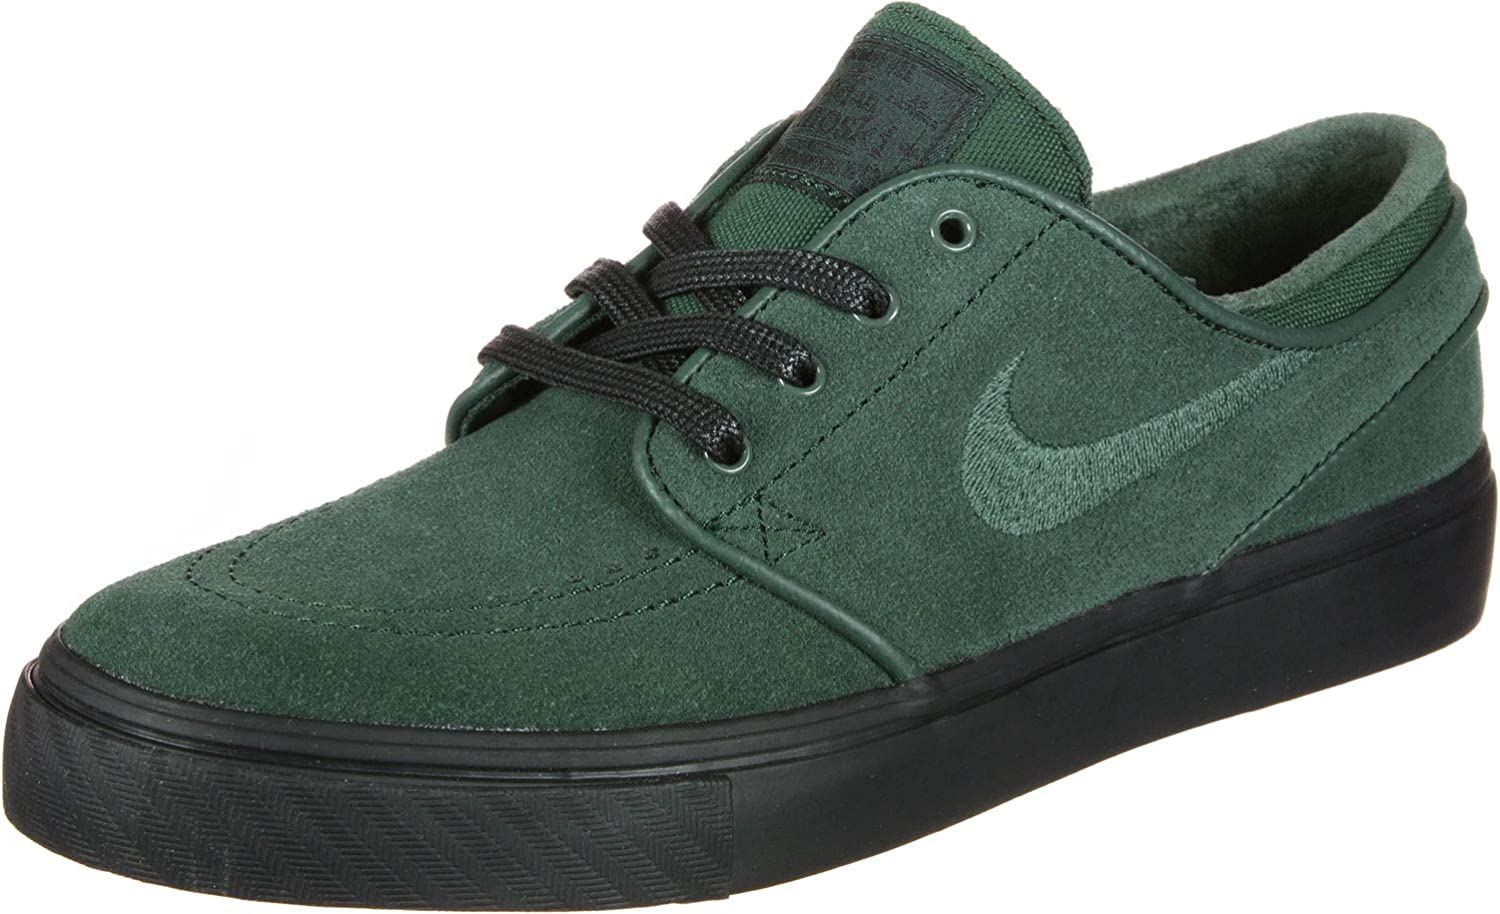 científico limpiar revisión  Nike Boys Zoom Stefan Janoski Skateboarding Shoes, Multicolour (Midnight  Green/Midnight Green-Black 312), 4.5UK Child: Amazon.co.uk: Shoes & Bags